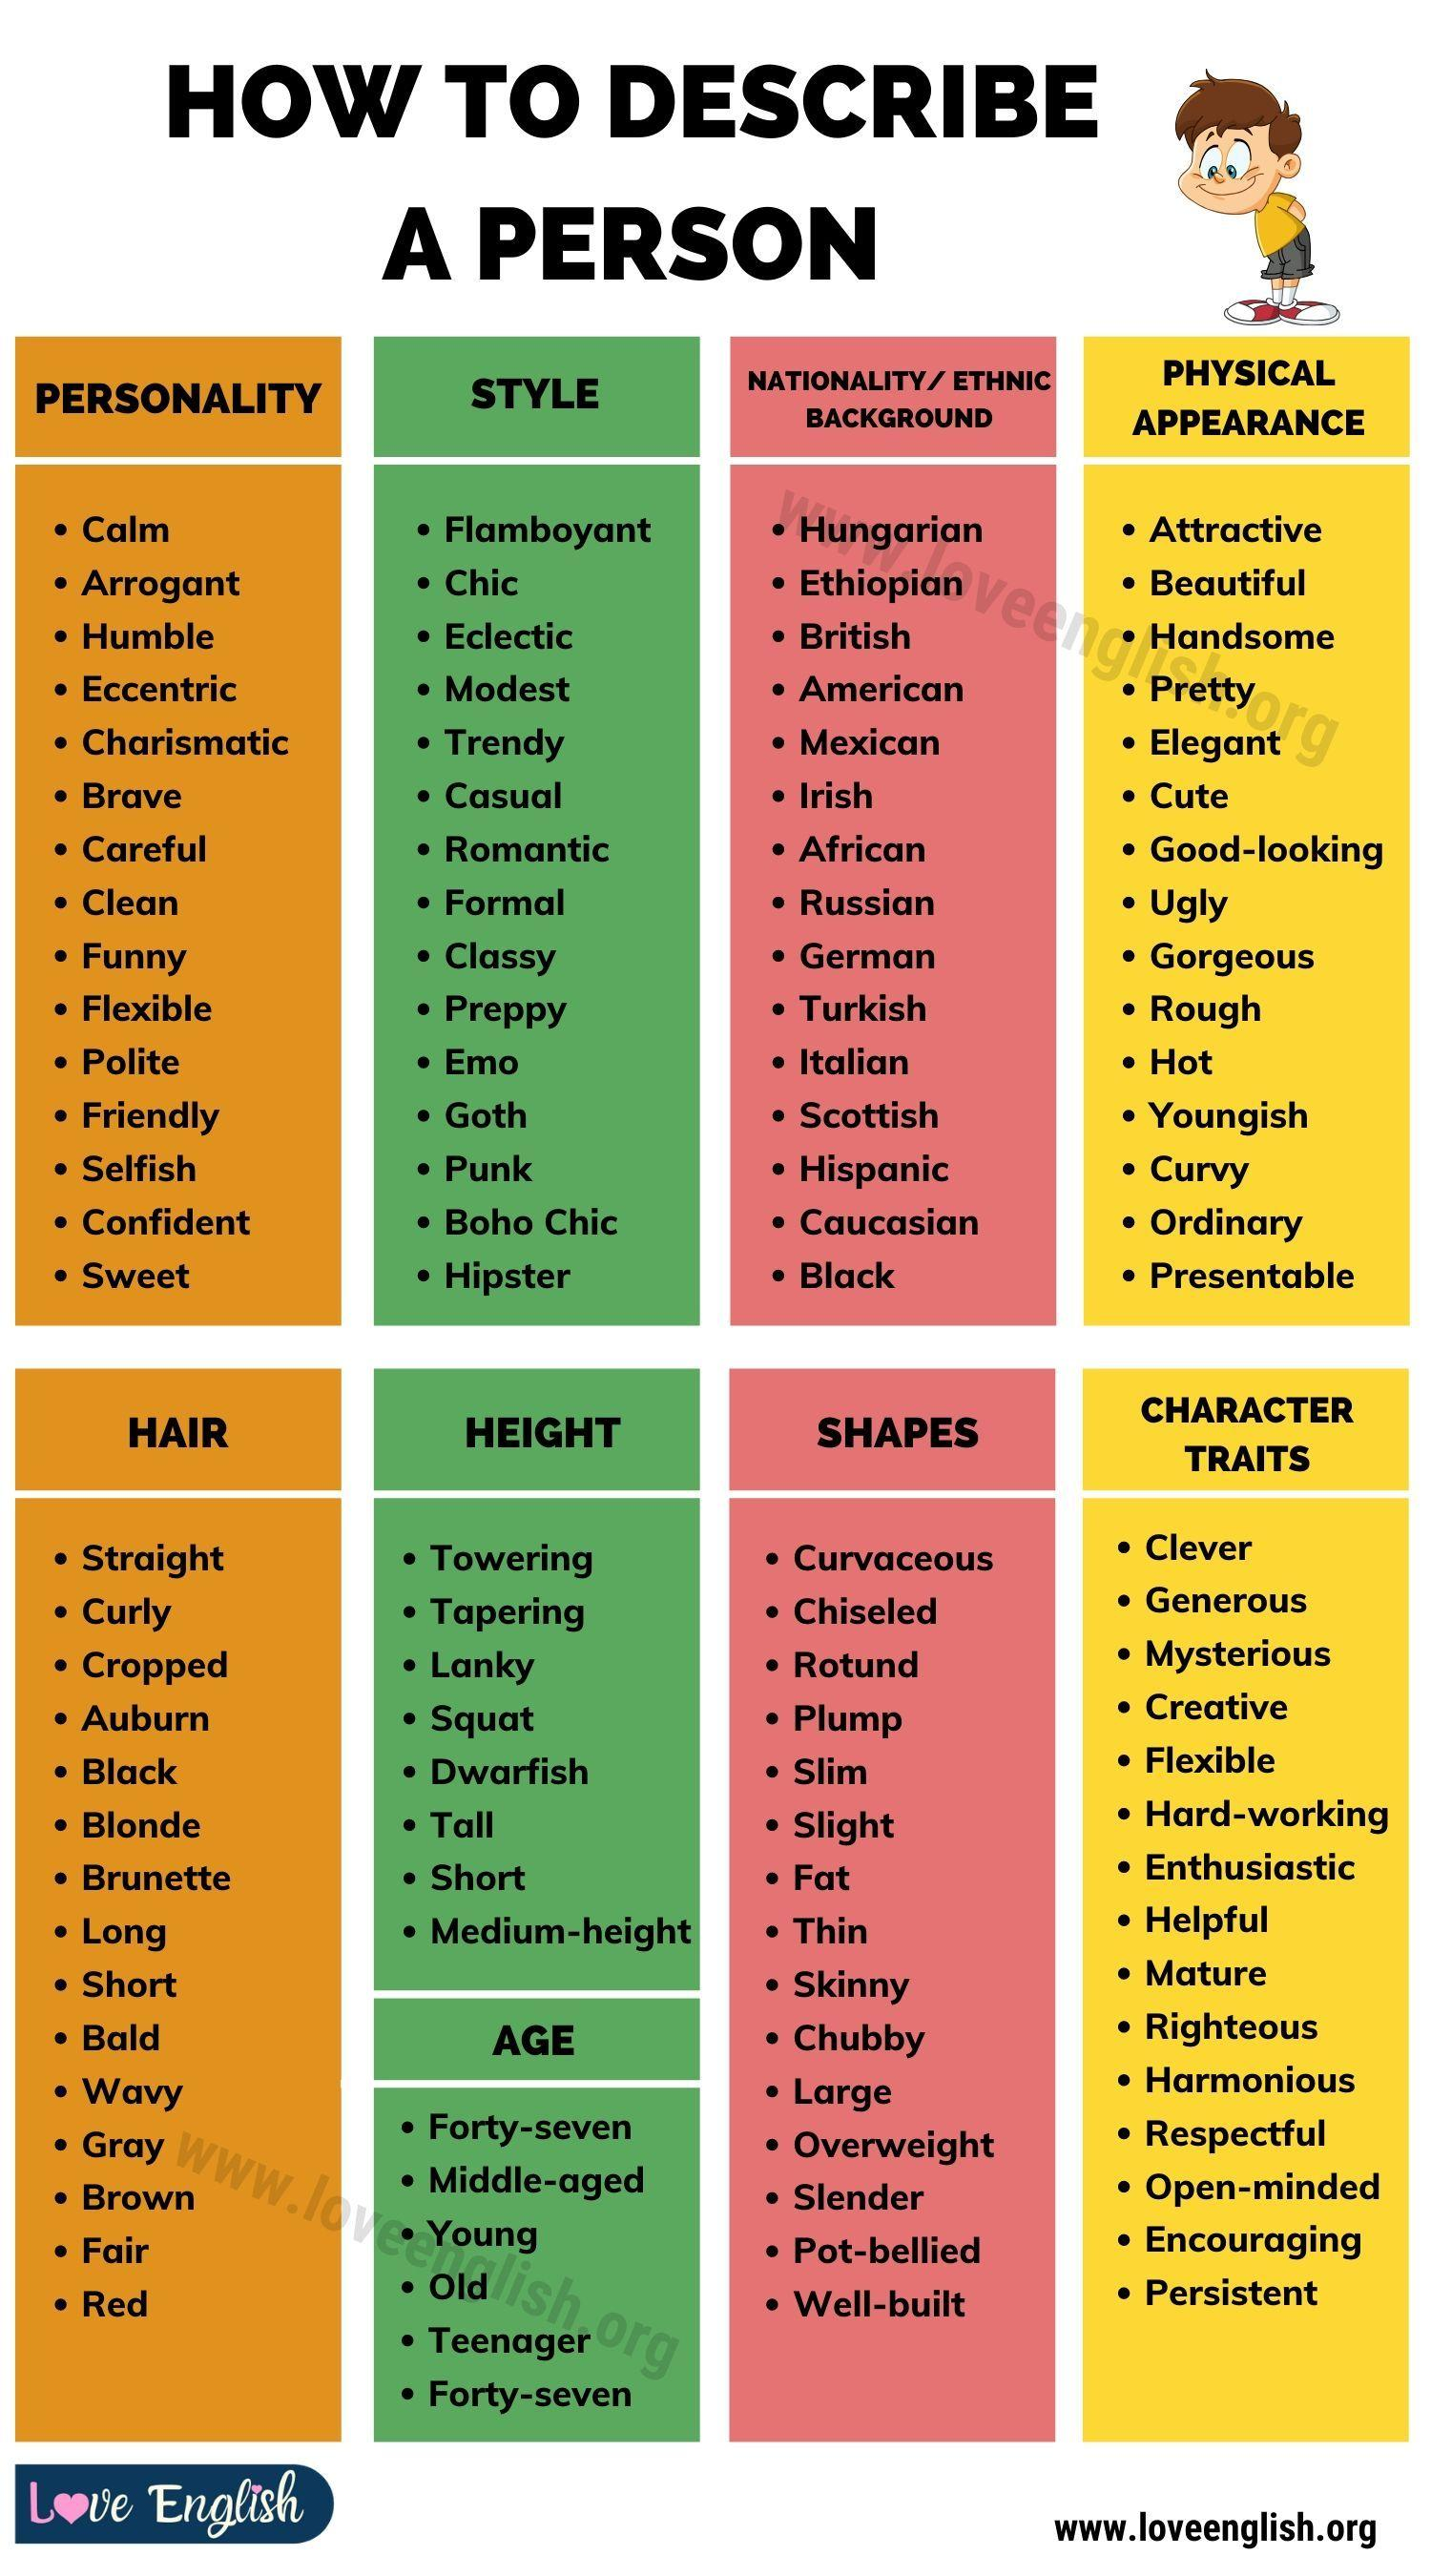 Grammar corner Adjectives for Describing People in English